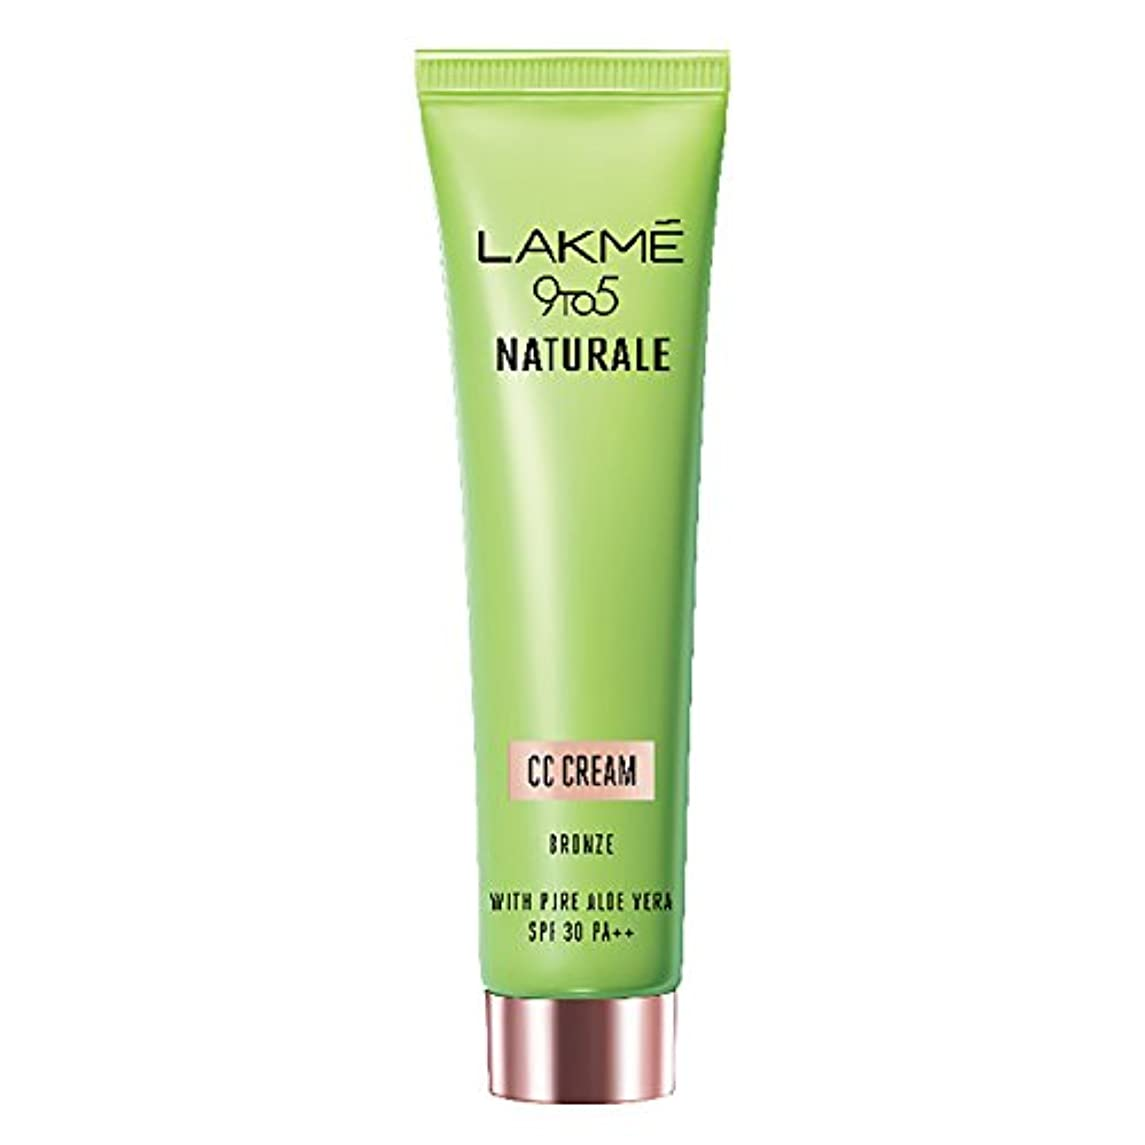 マリン郵便物策定するLakme 9 to 5 Naturale CC Cream, Bronze, 30g